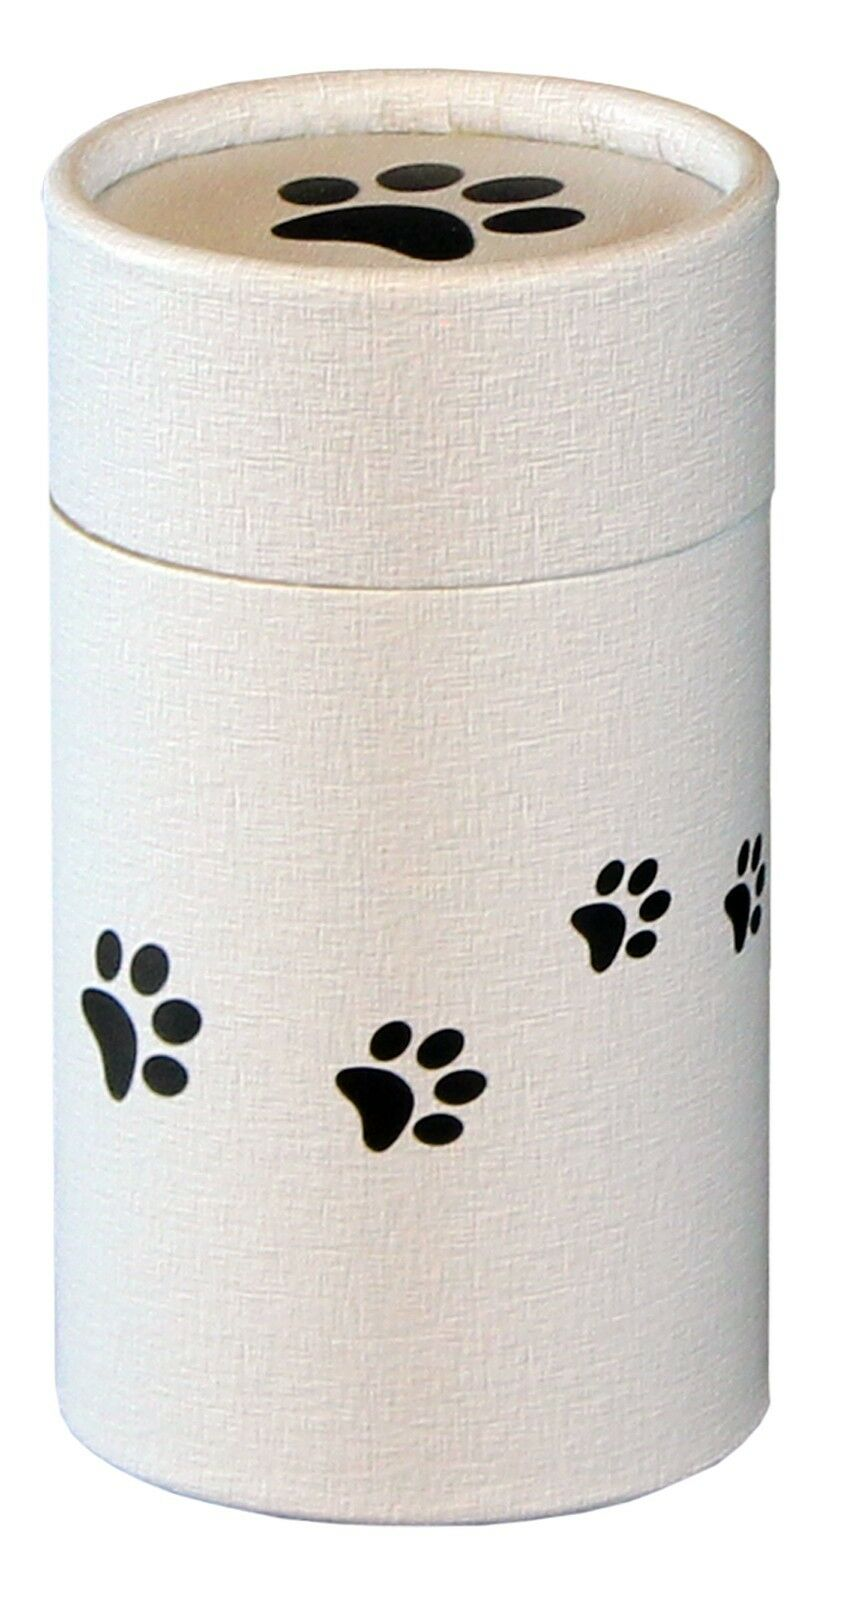 Paws Large 100 Cubic Inches Biodegradable Scattering Tube for Ashes